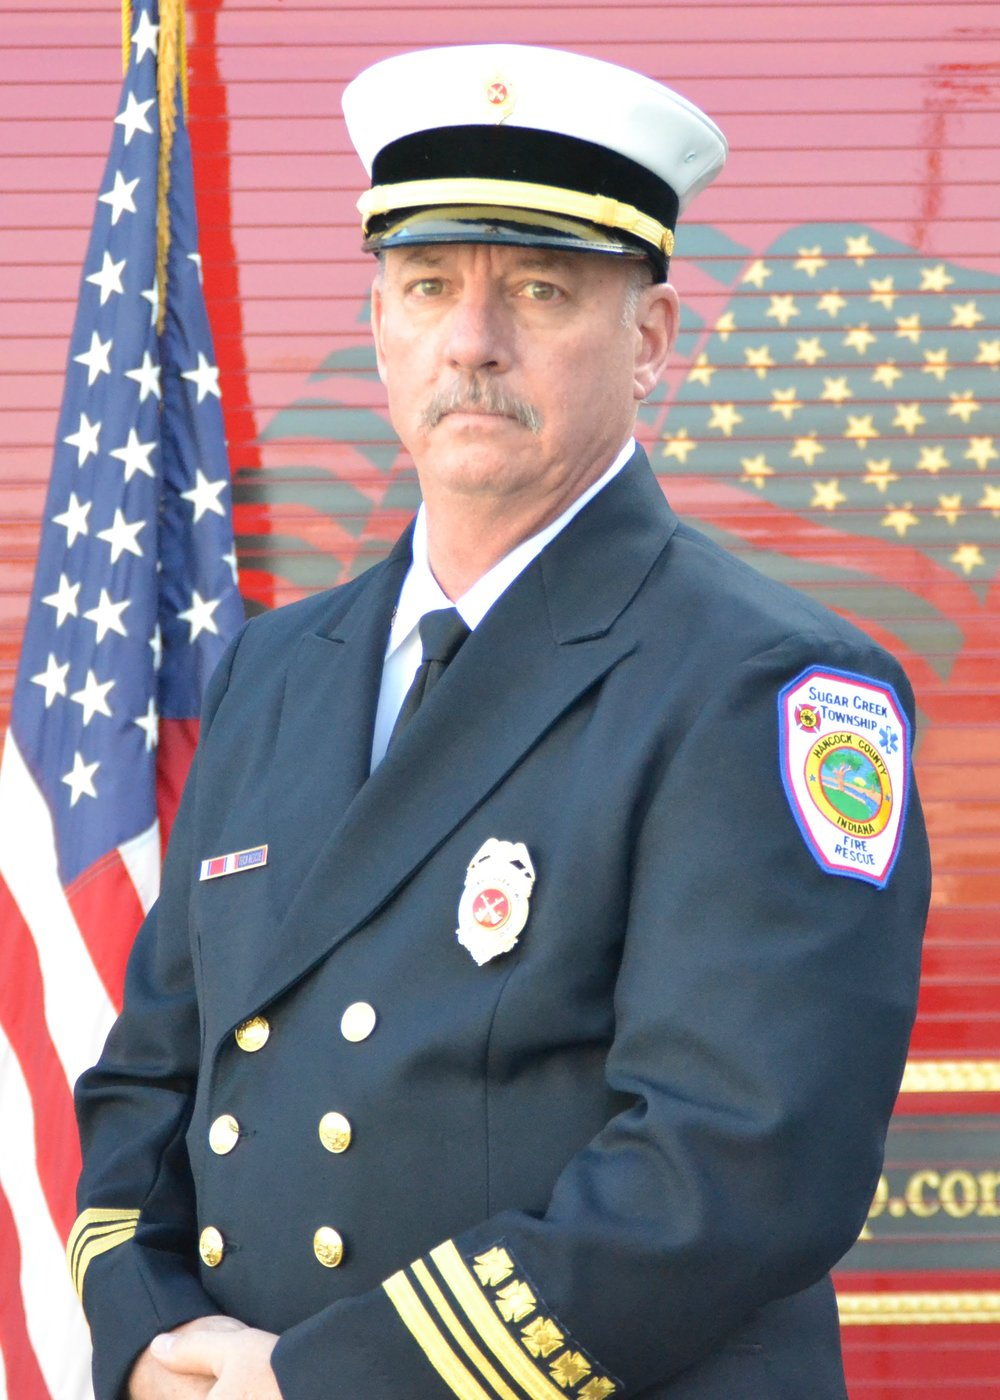 Battalion Chief Joe Fitzgerald -B-